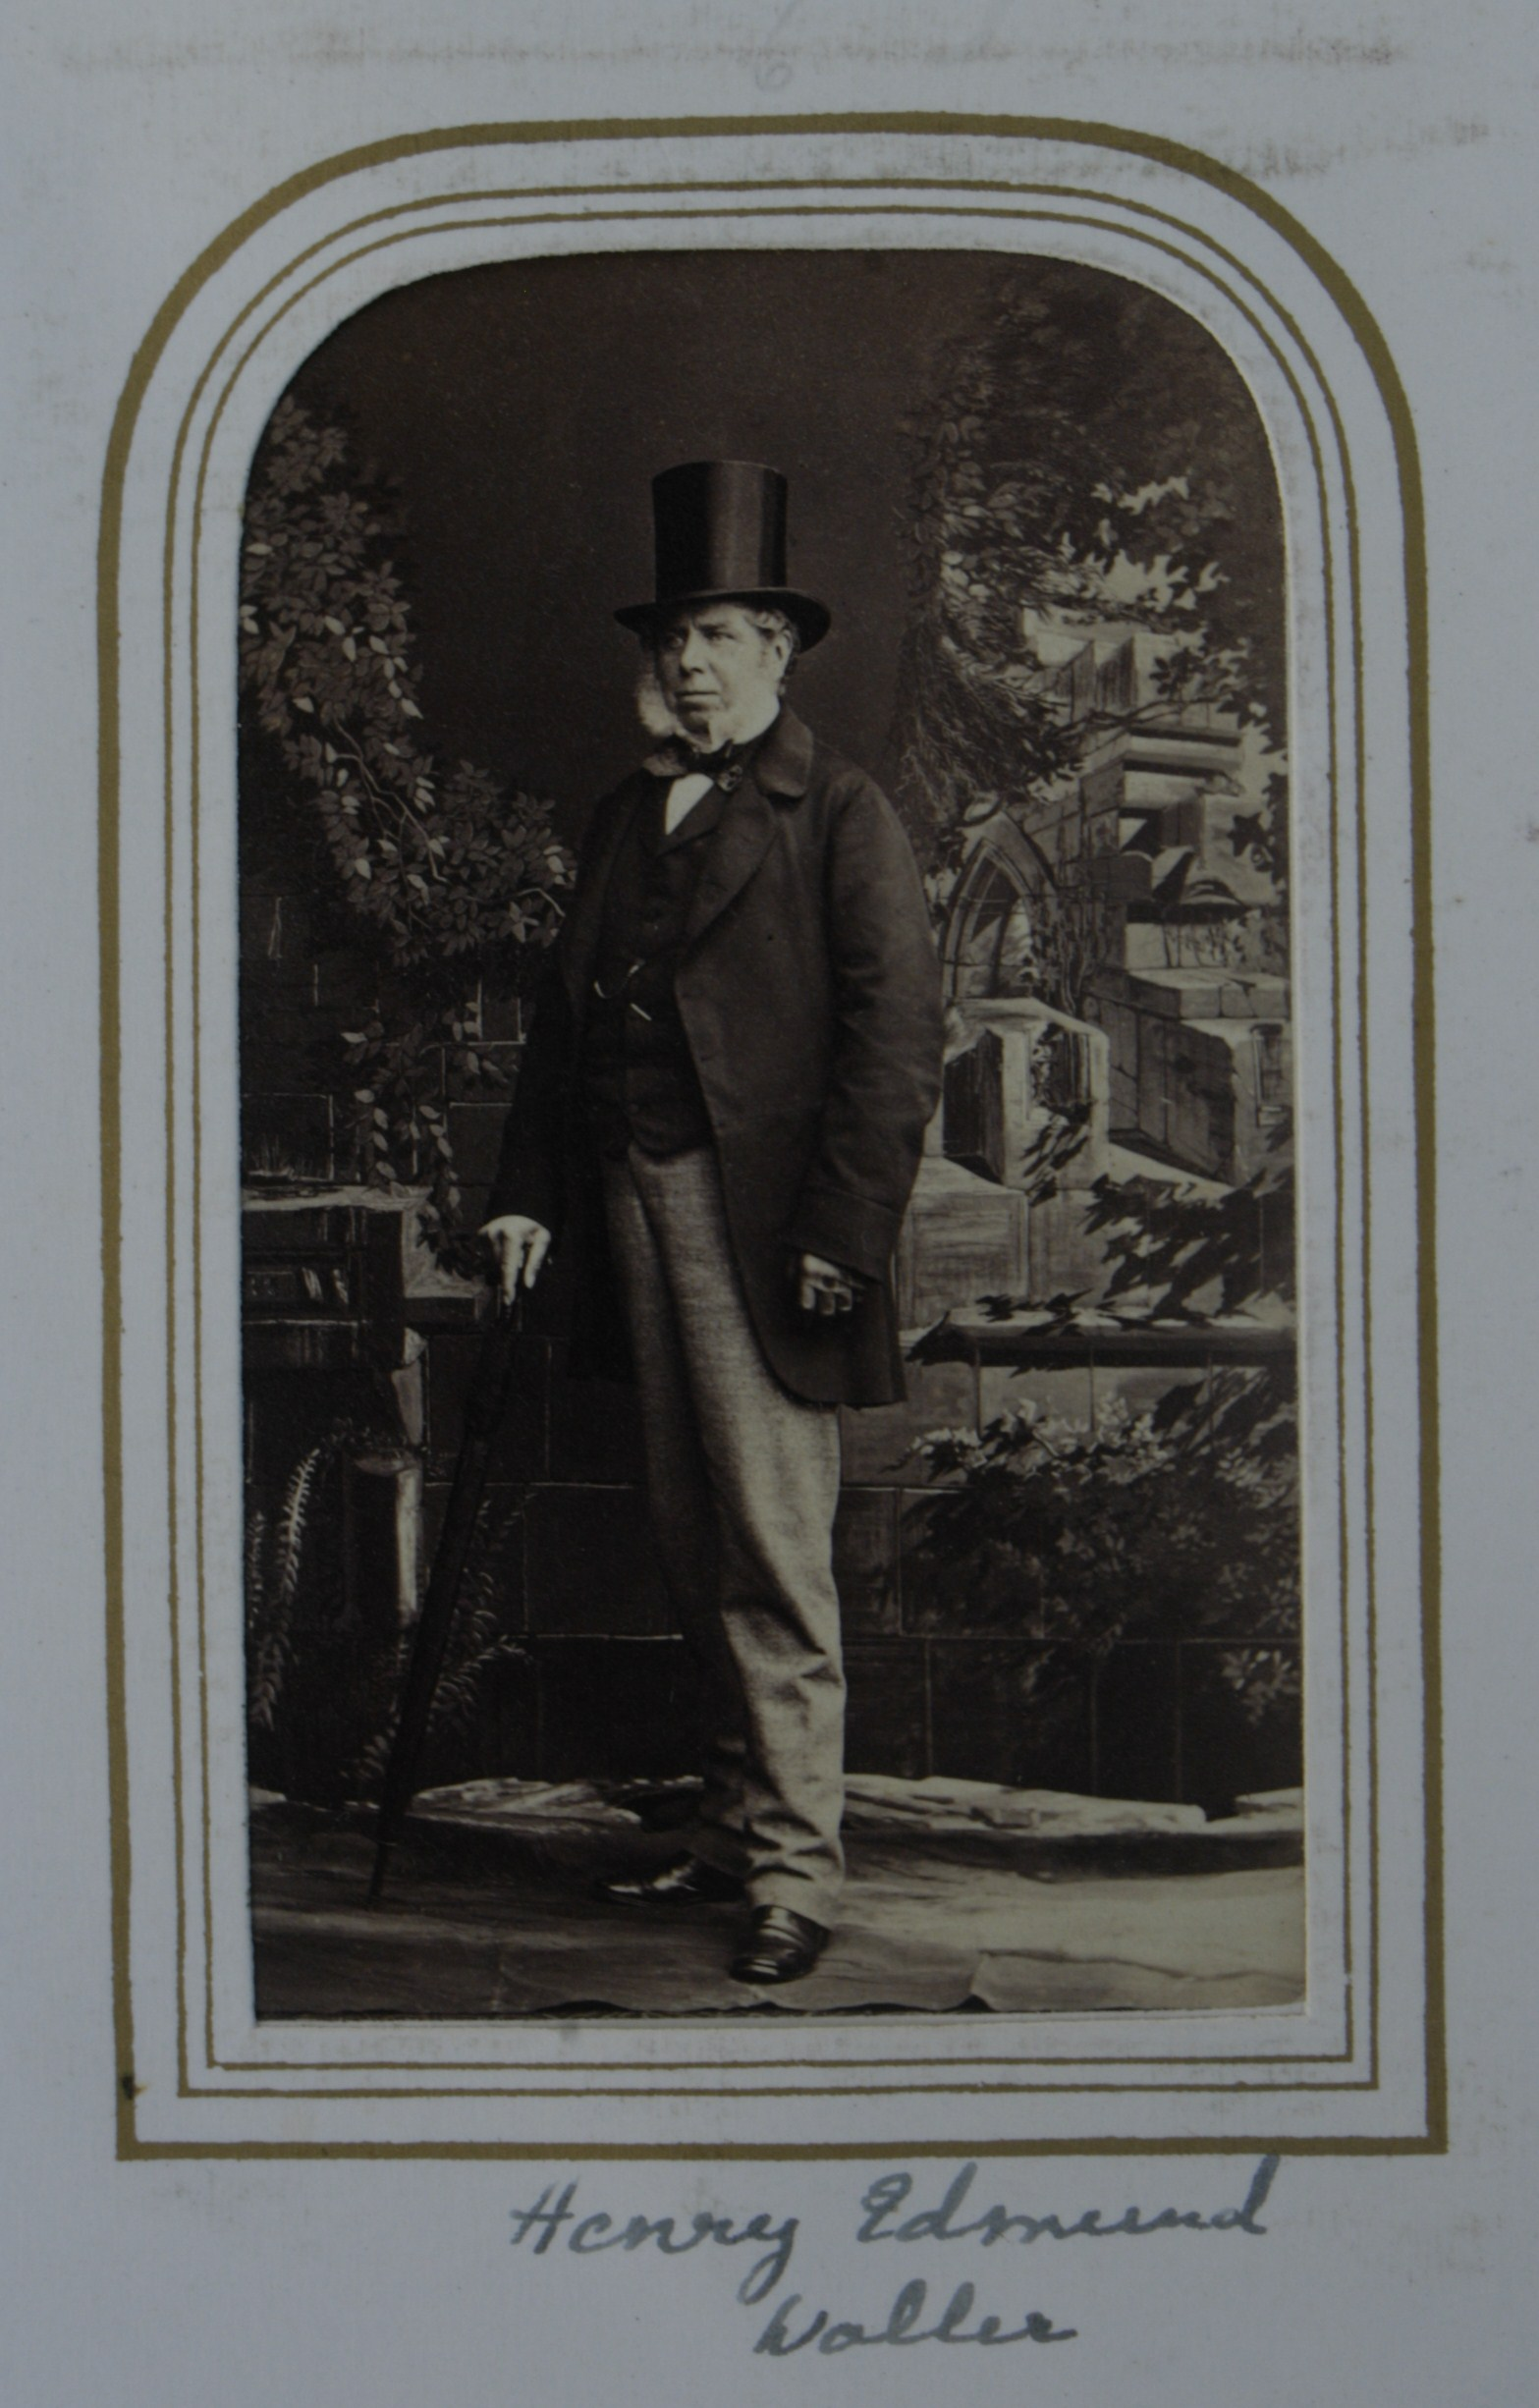 FileCarte De Visite Standing With Top Hat Of Harry Edmund Waller JP DL 1804 69 Farmington And Kirkby Fleetham